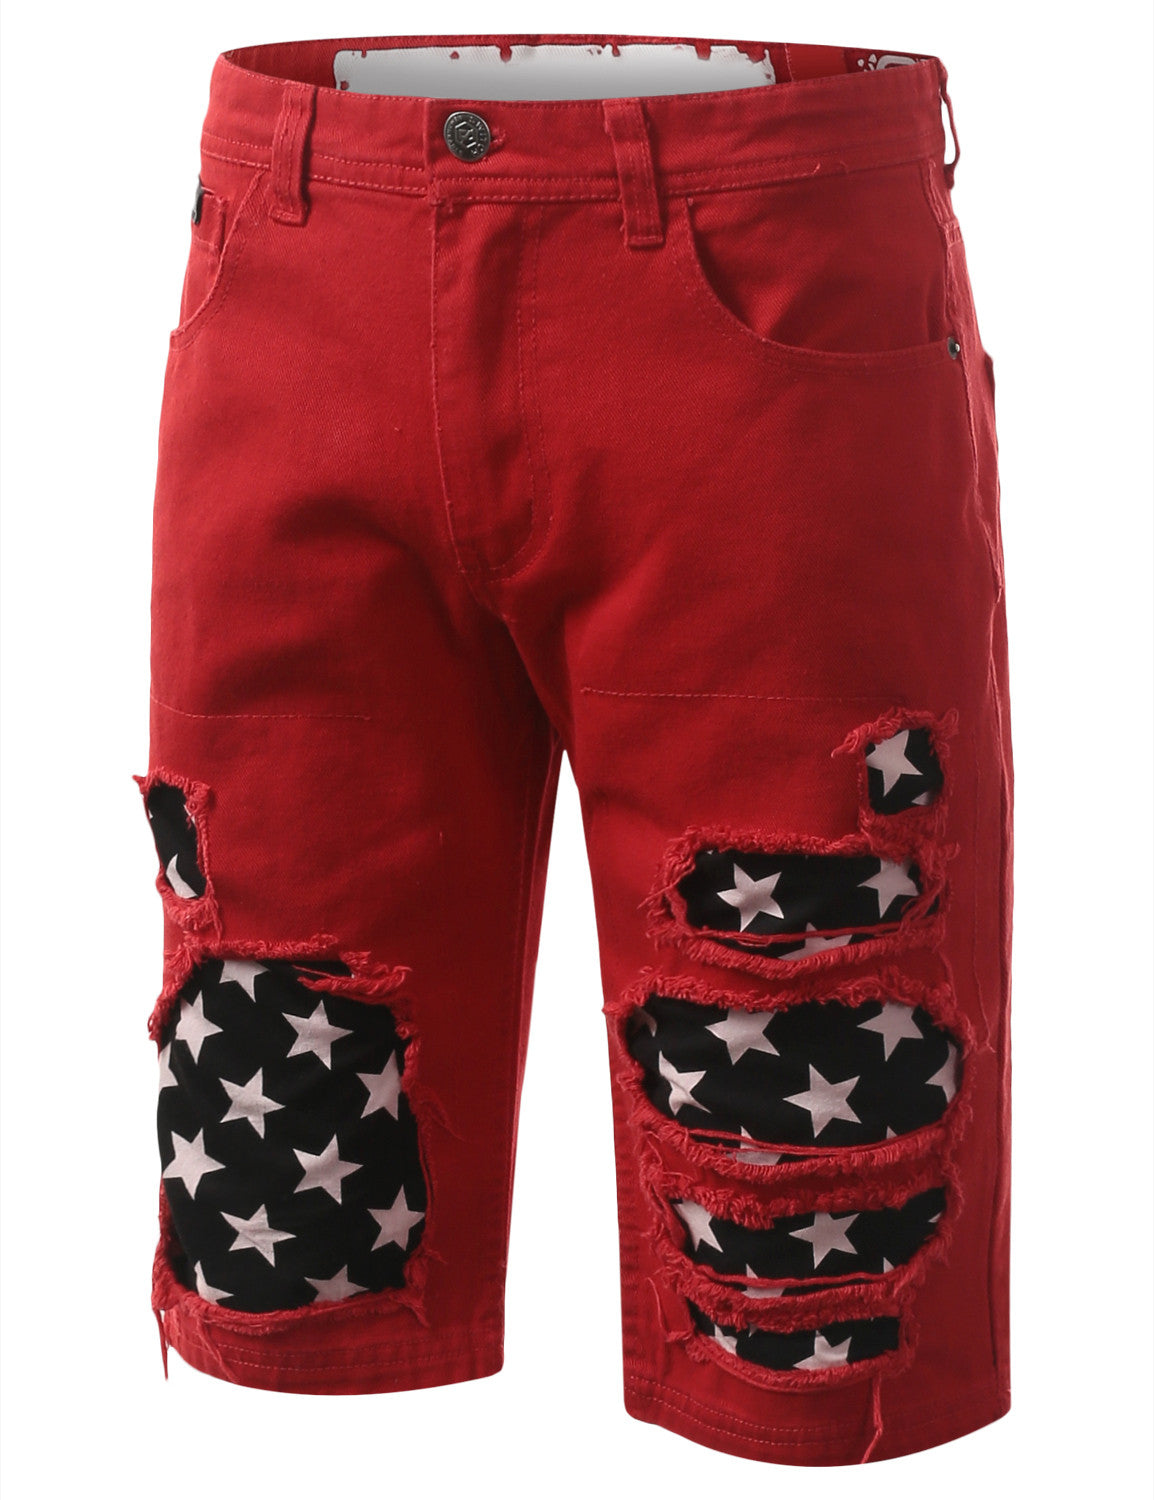 Rip Star Patch Denim Shorts - URBANCREWS - 1